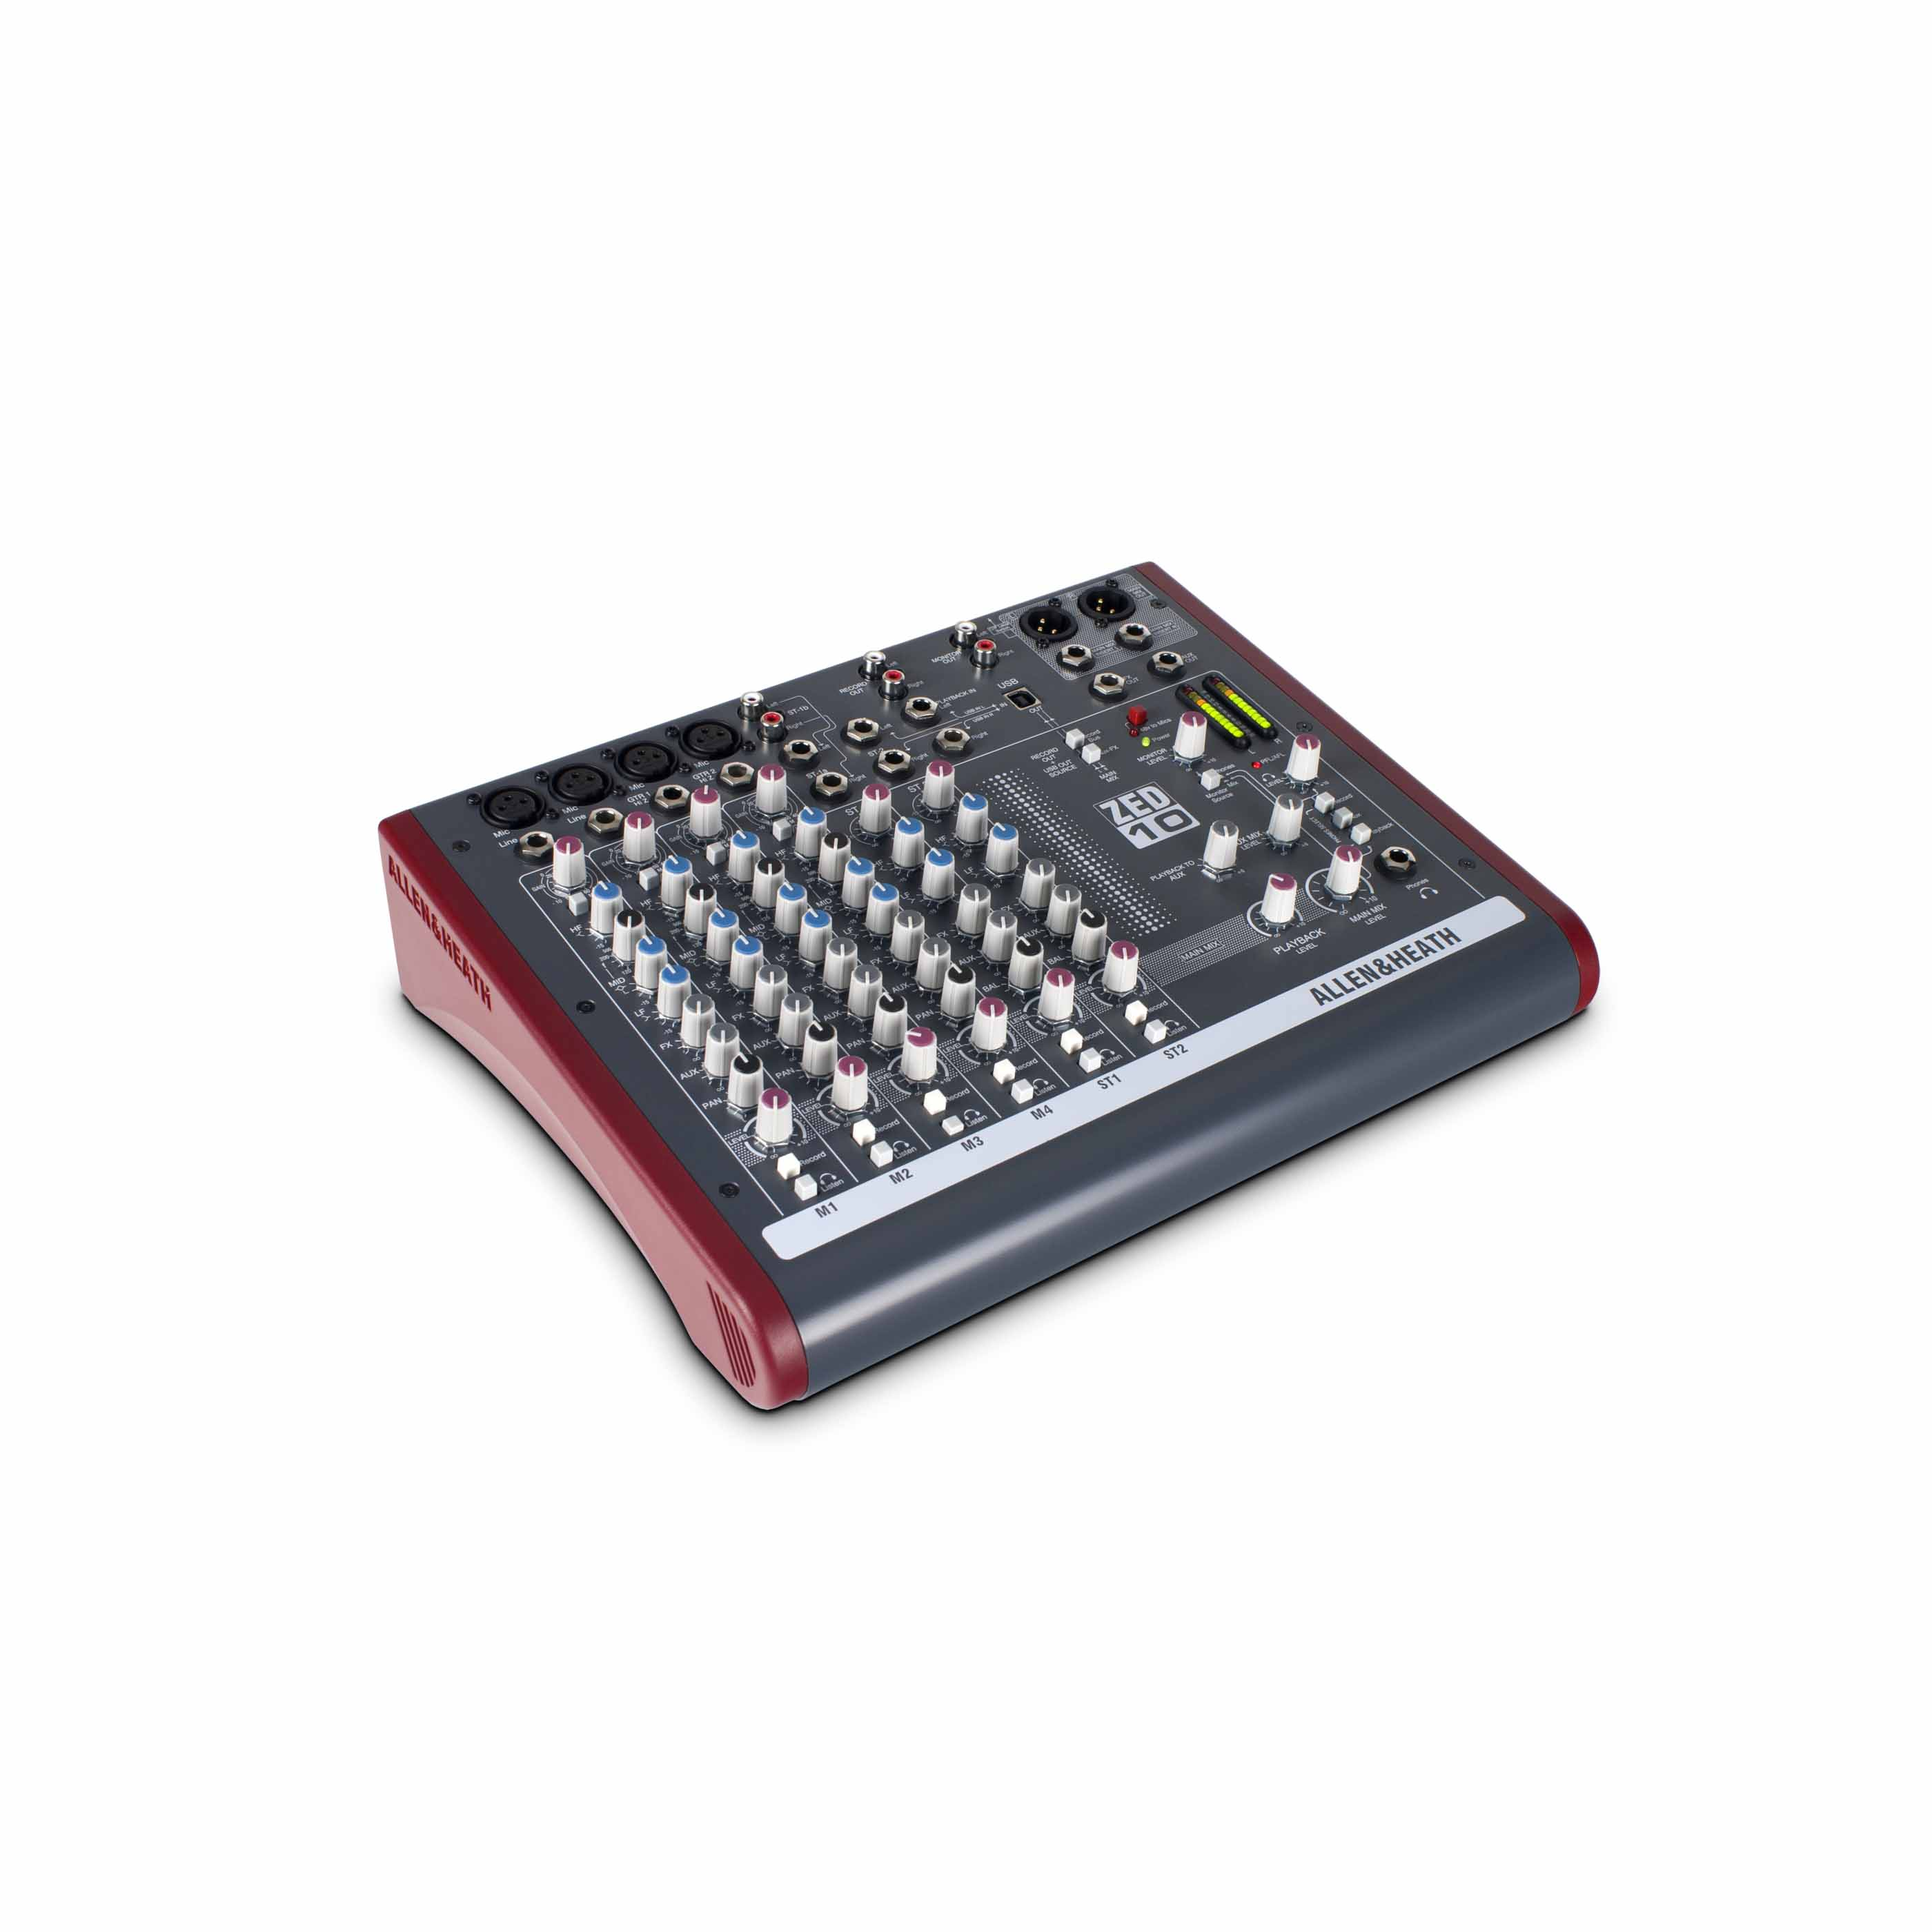 NEW Allen /& Heath Zed 10 mixing console with USB